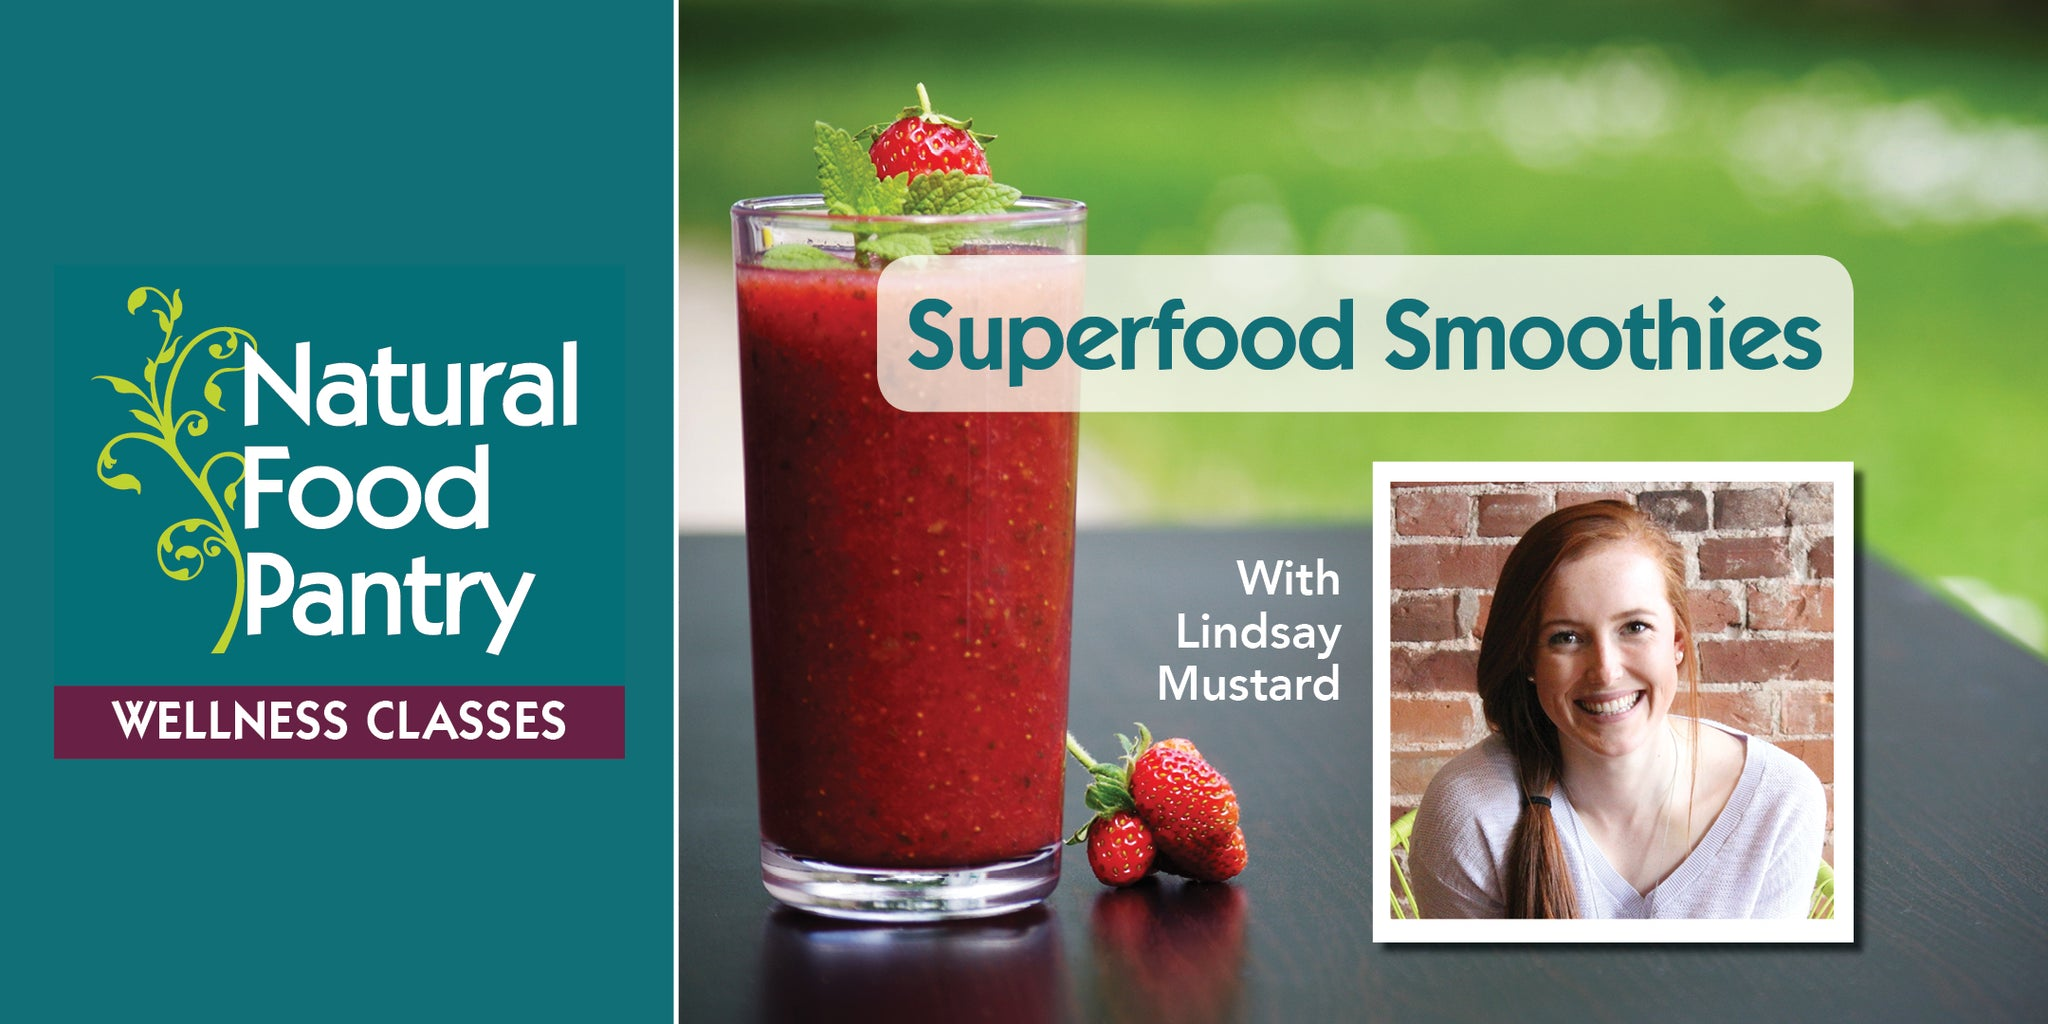 Apr 27: NFP Class - Superfood Smoothies!